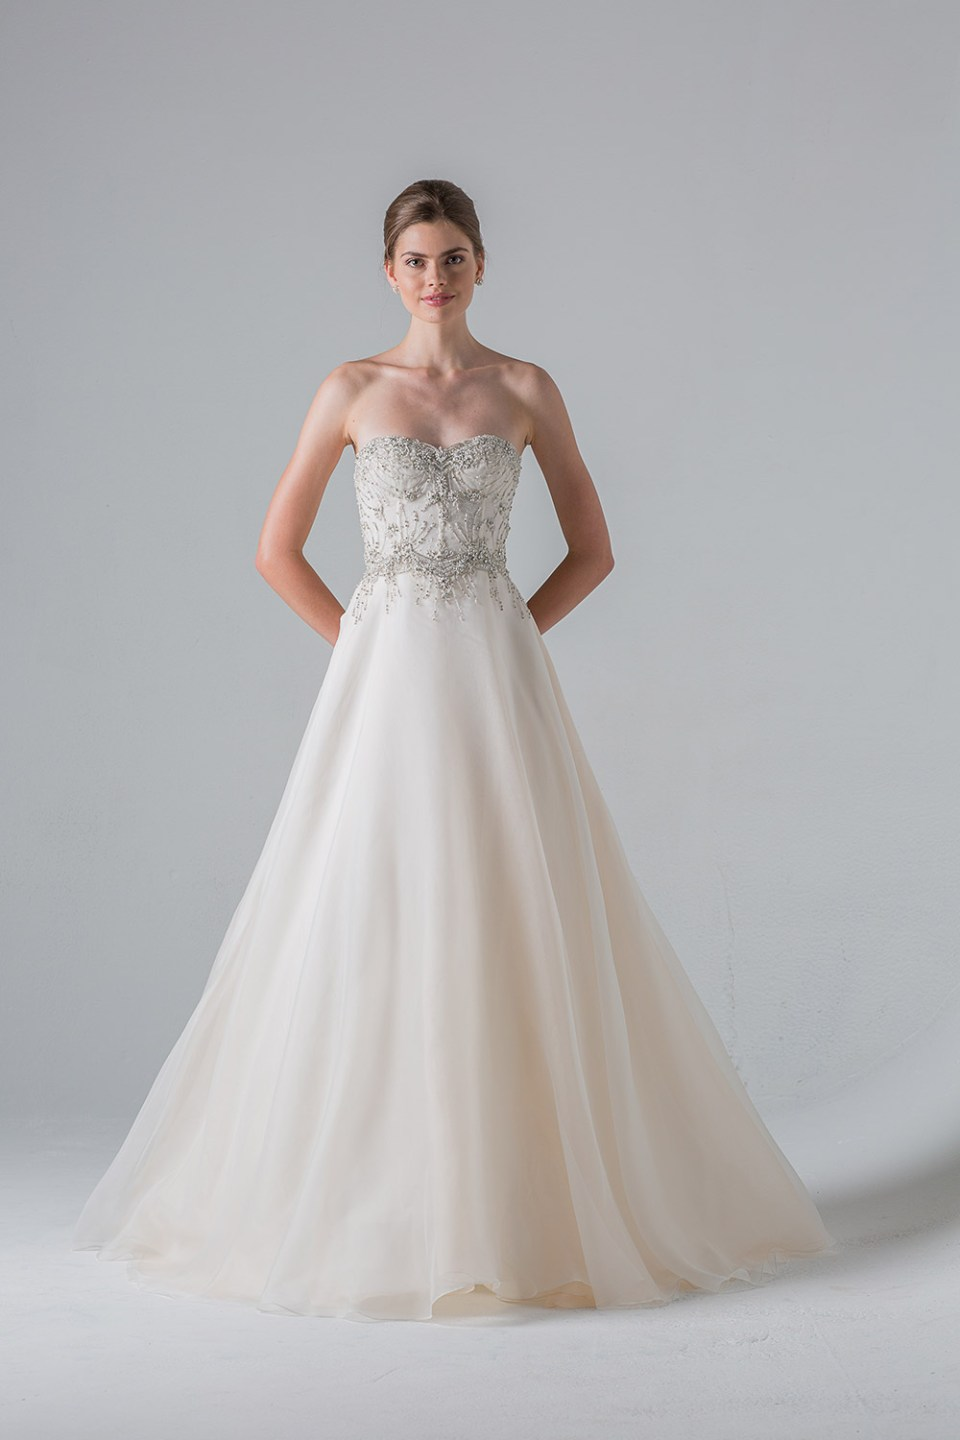 Reverie - Anne Barge Couture Spring 2016 Collection. www.theweddingnotebook.com